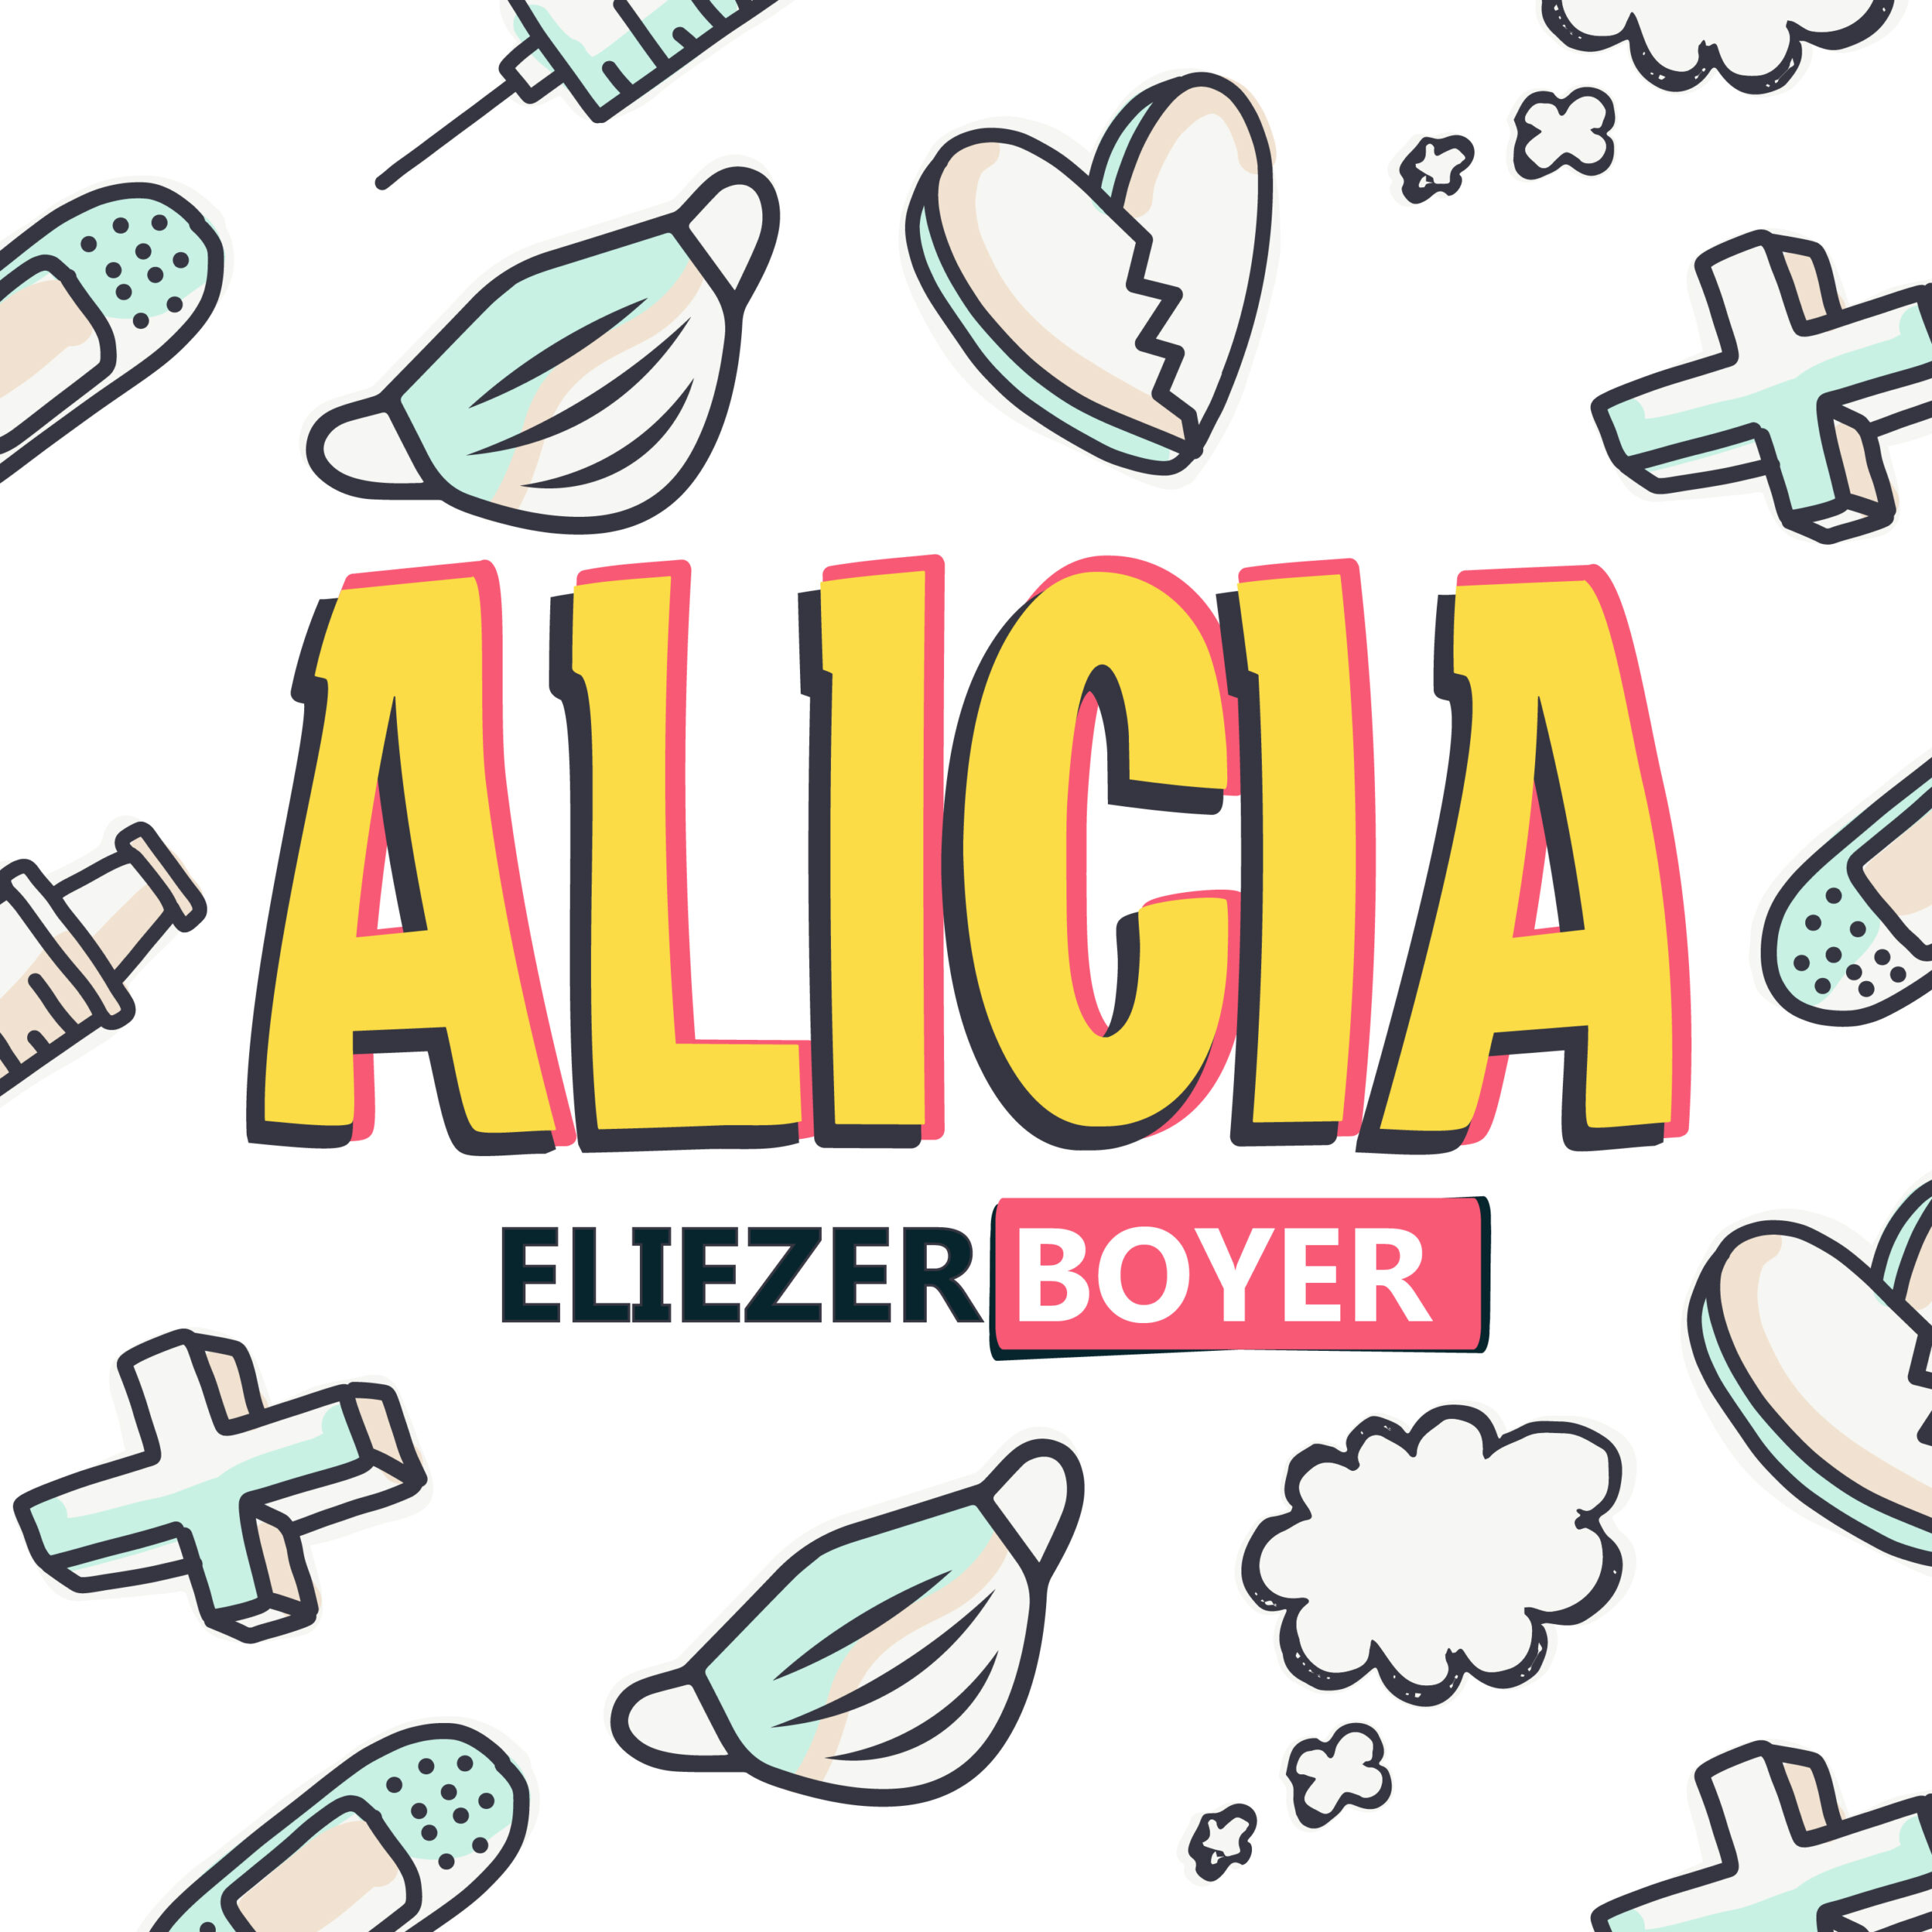 Eliezer Boyer Alicia